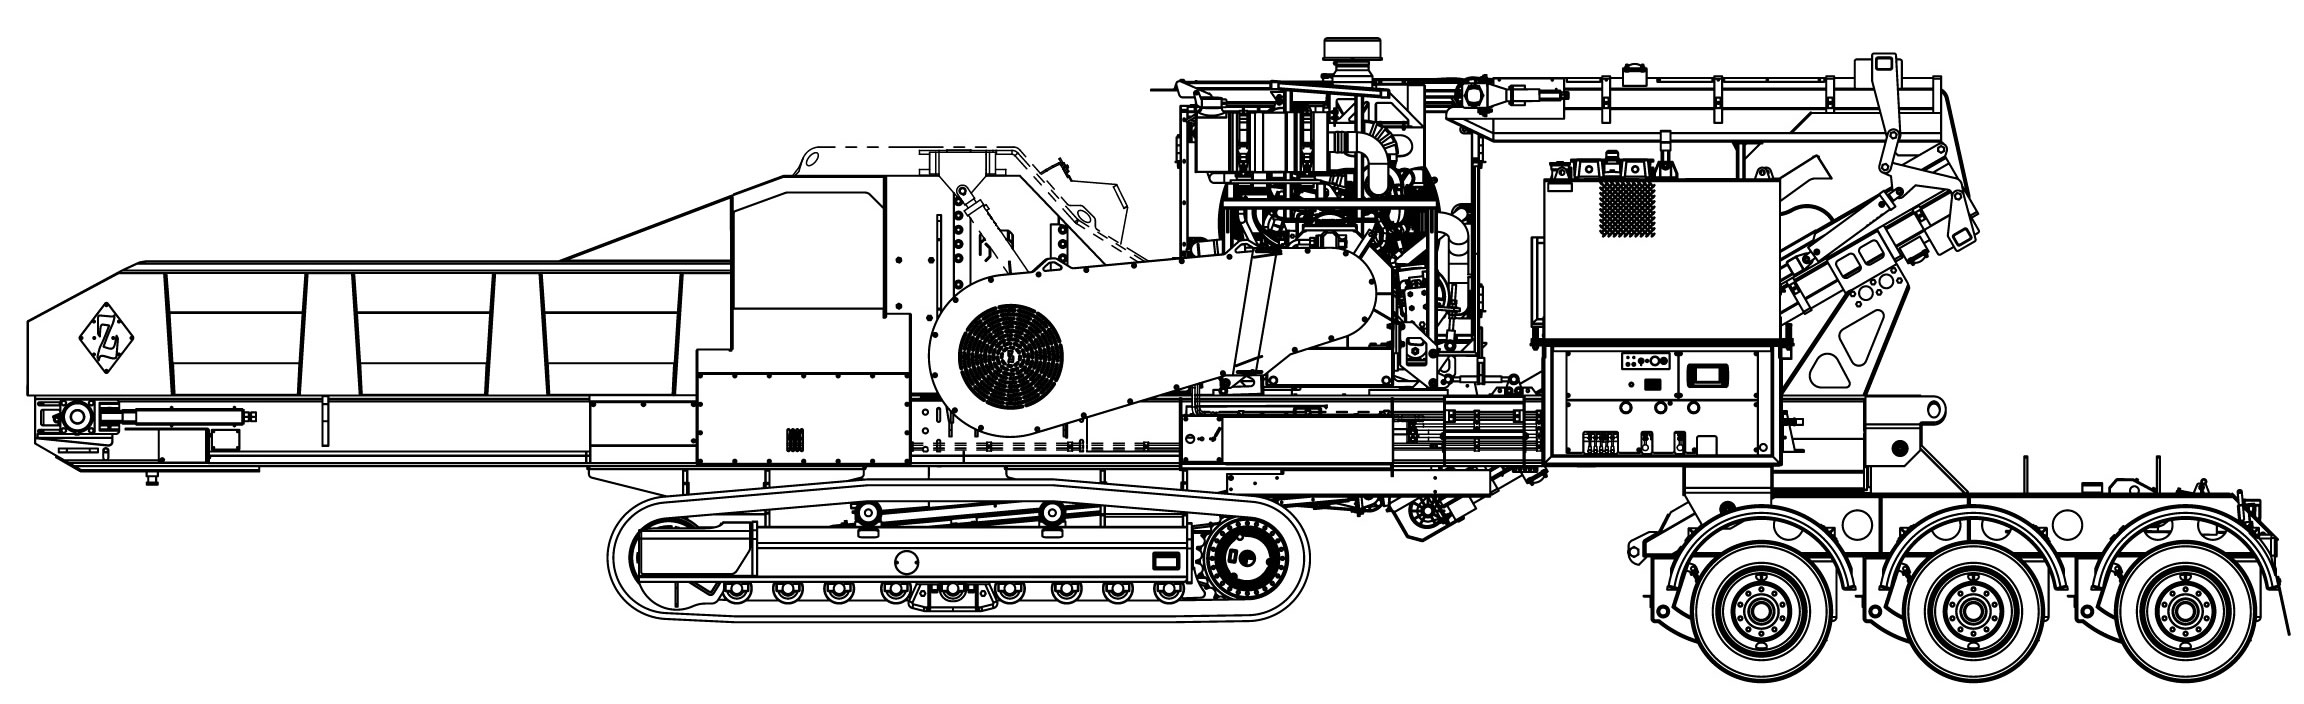 DZH4000TKT    STANDARD FEATURES : Fluid coupling mill drive, reversing fan, radio remote control, tool box, engine cover, and super-screw belt lacing.  Weights vary depending on options. Widths based on 600 mm tracks or Transporter width.  Diamond Z reserves the right to improve our products and make changes without notice. Actual products and production rates may vary.